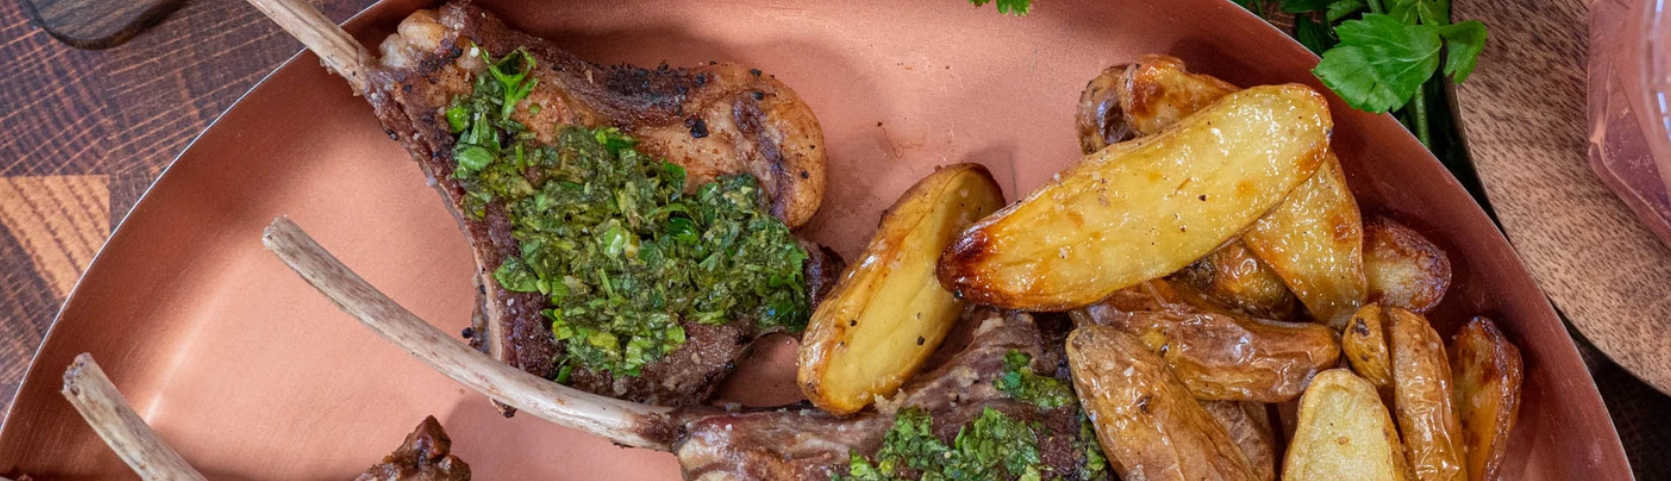 Image of Spring Lamb Chops with Truffle Roasted Fingerling Potatoes